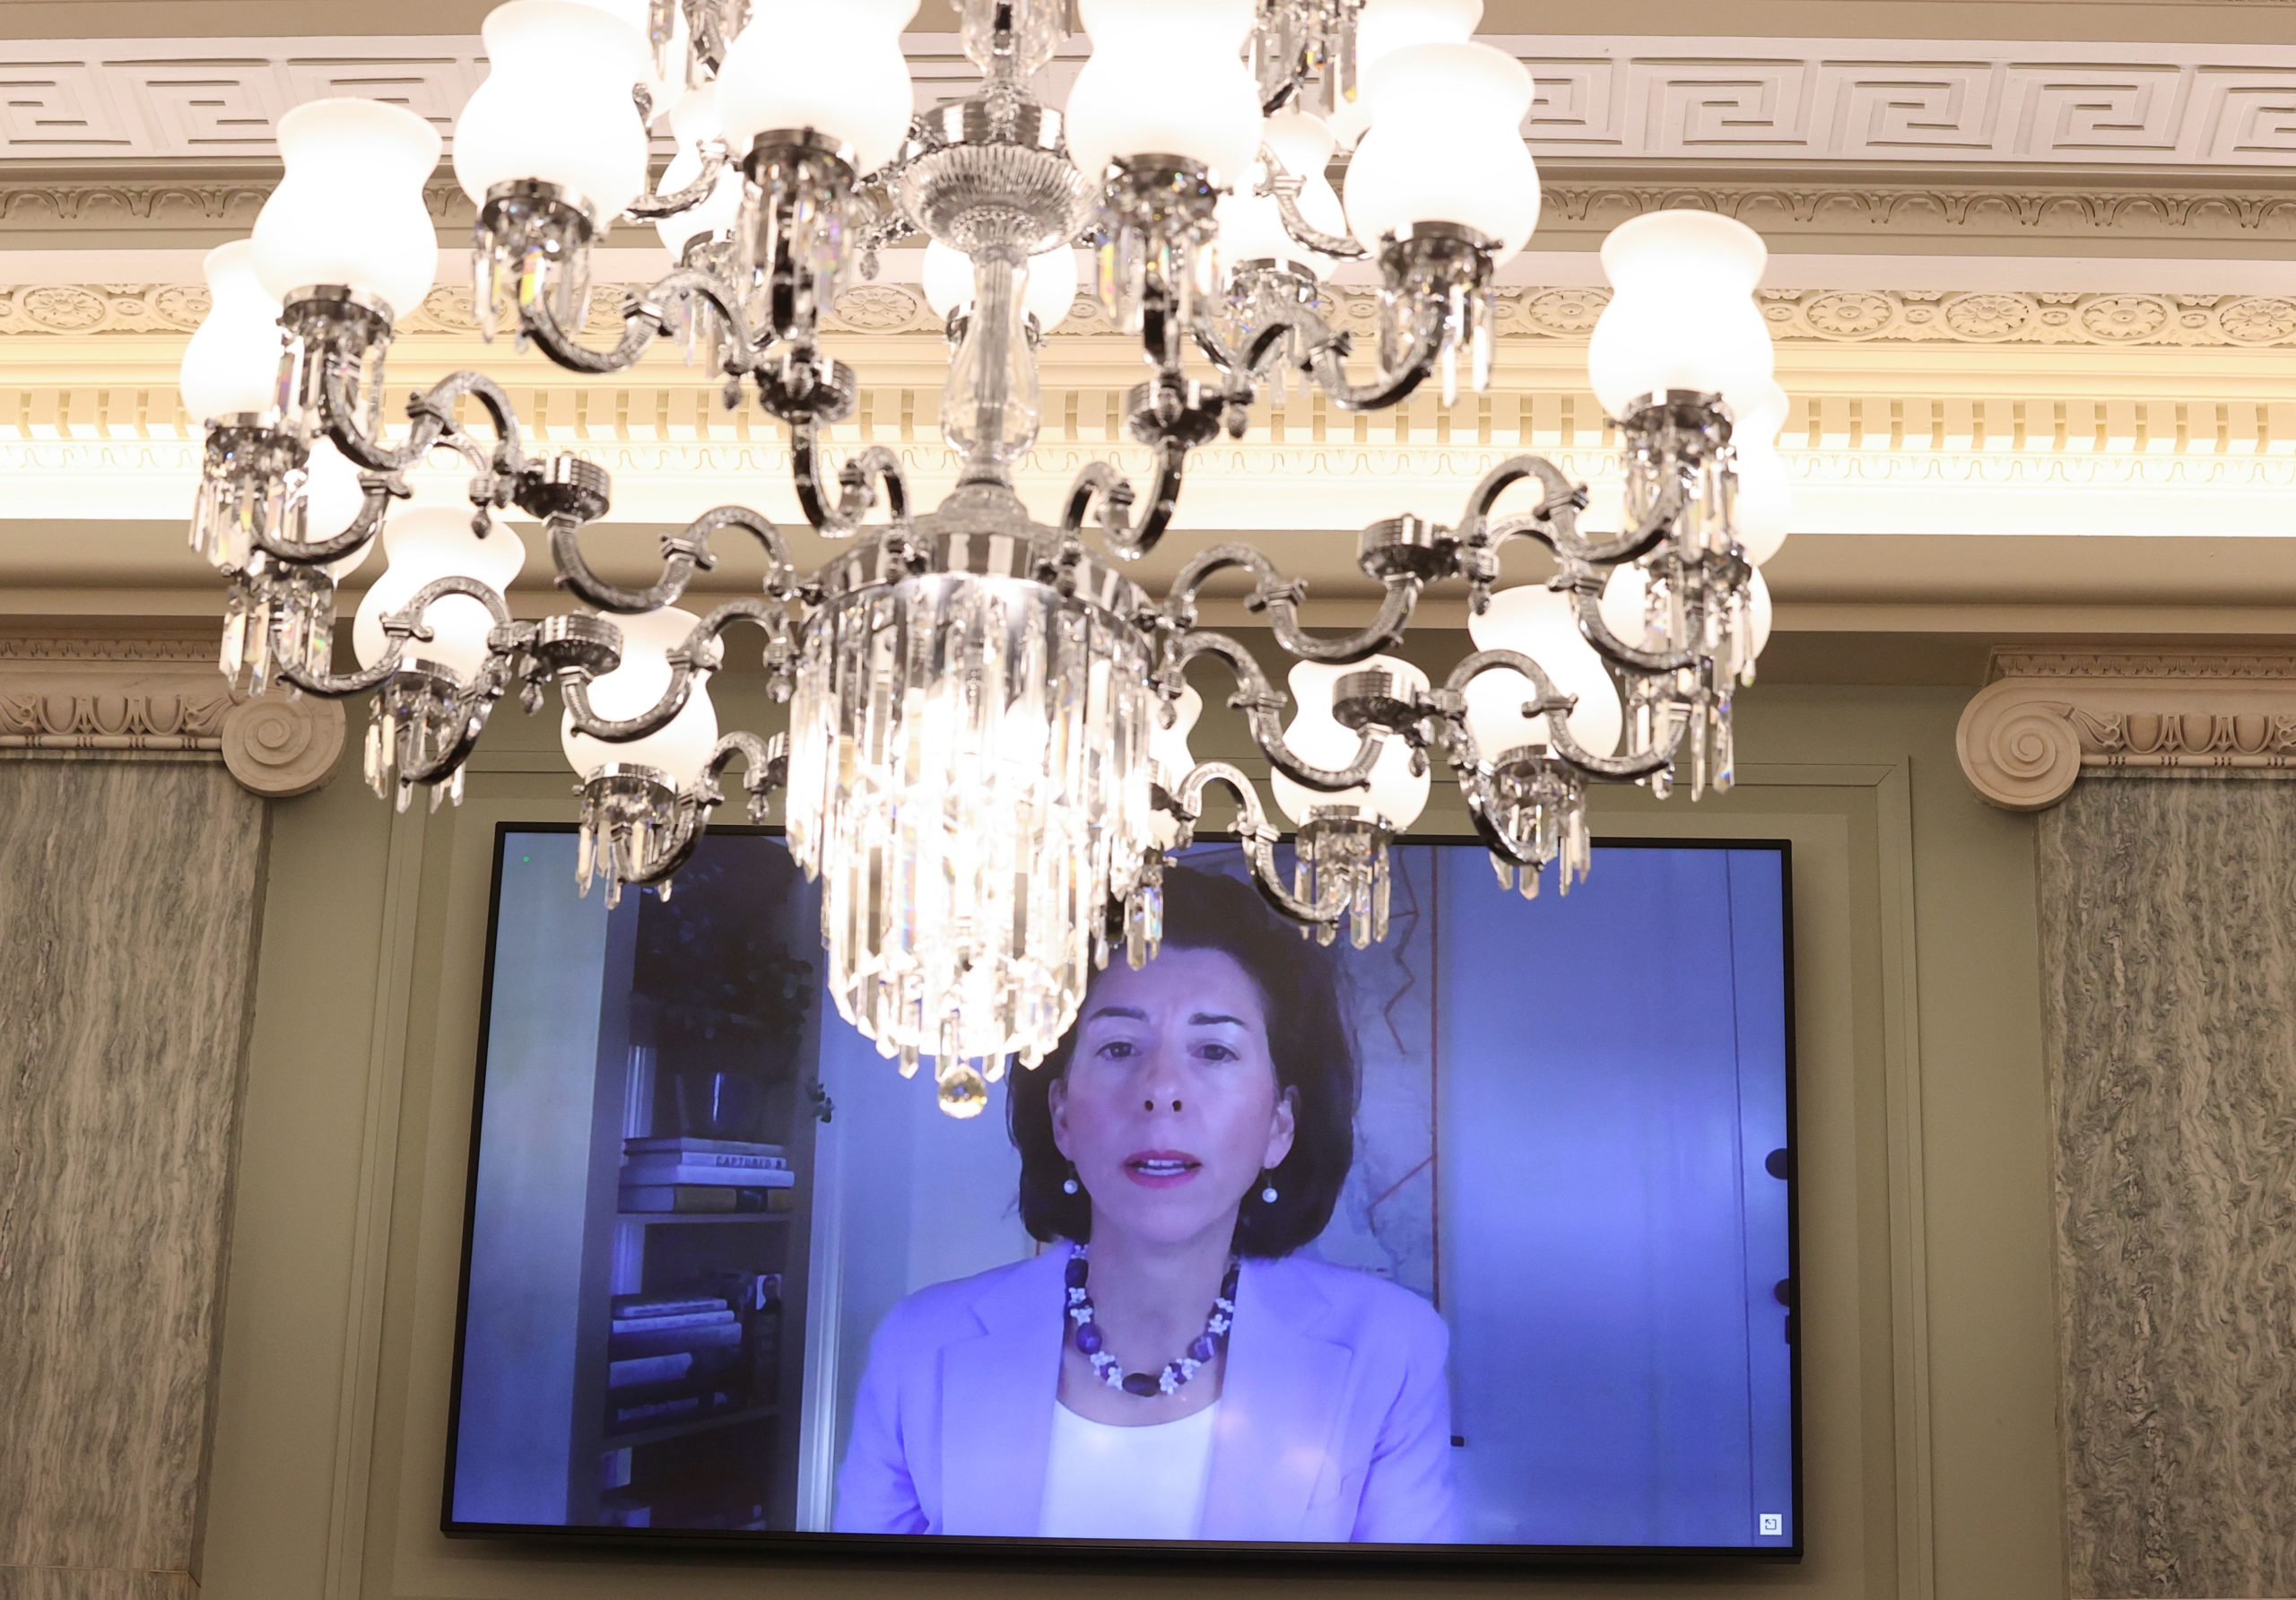 Sec. Gina Raimondo is seen testifying remotely during her Senate confirmation hearing on Jan. 26. (Jonathan Ernst/Pool/AFP via Getty Images)